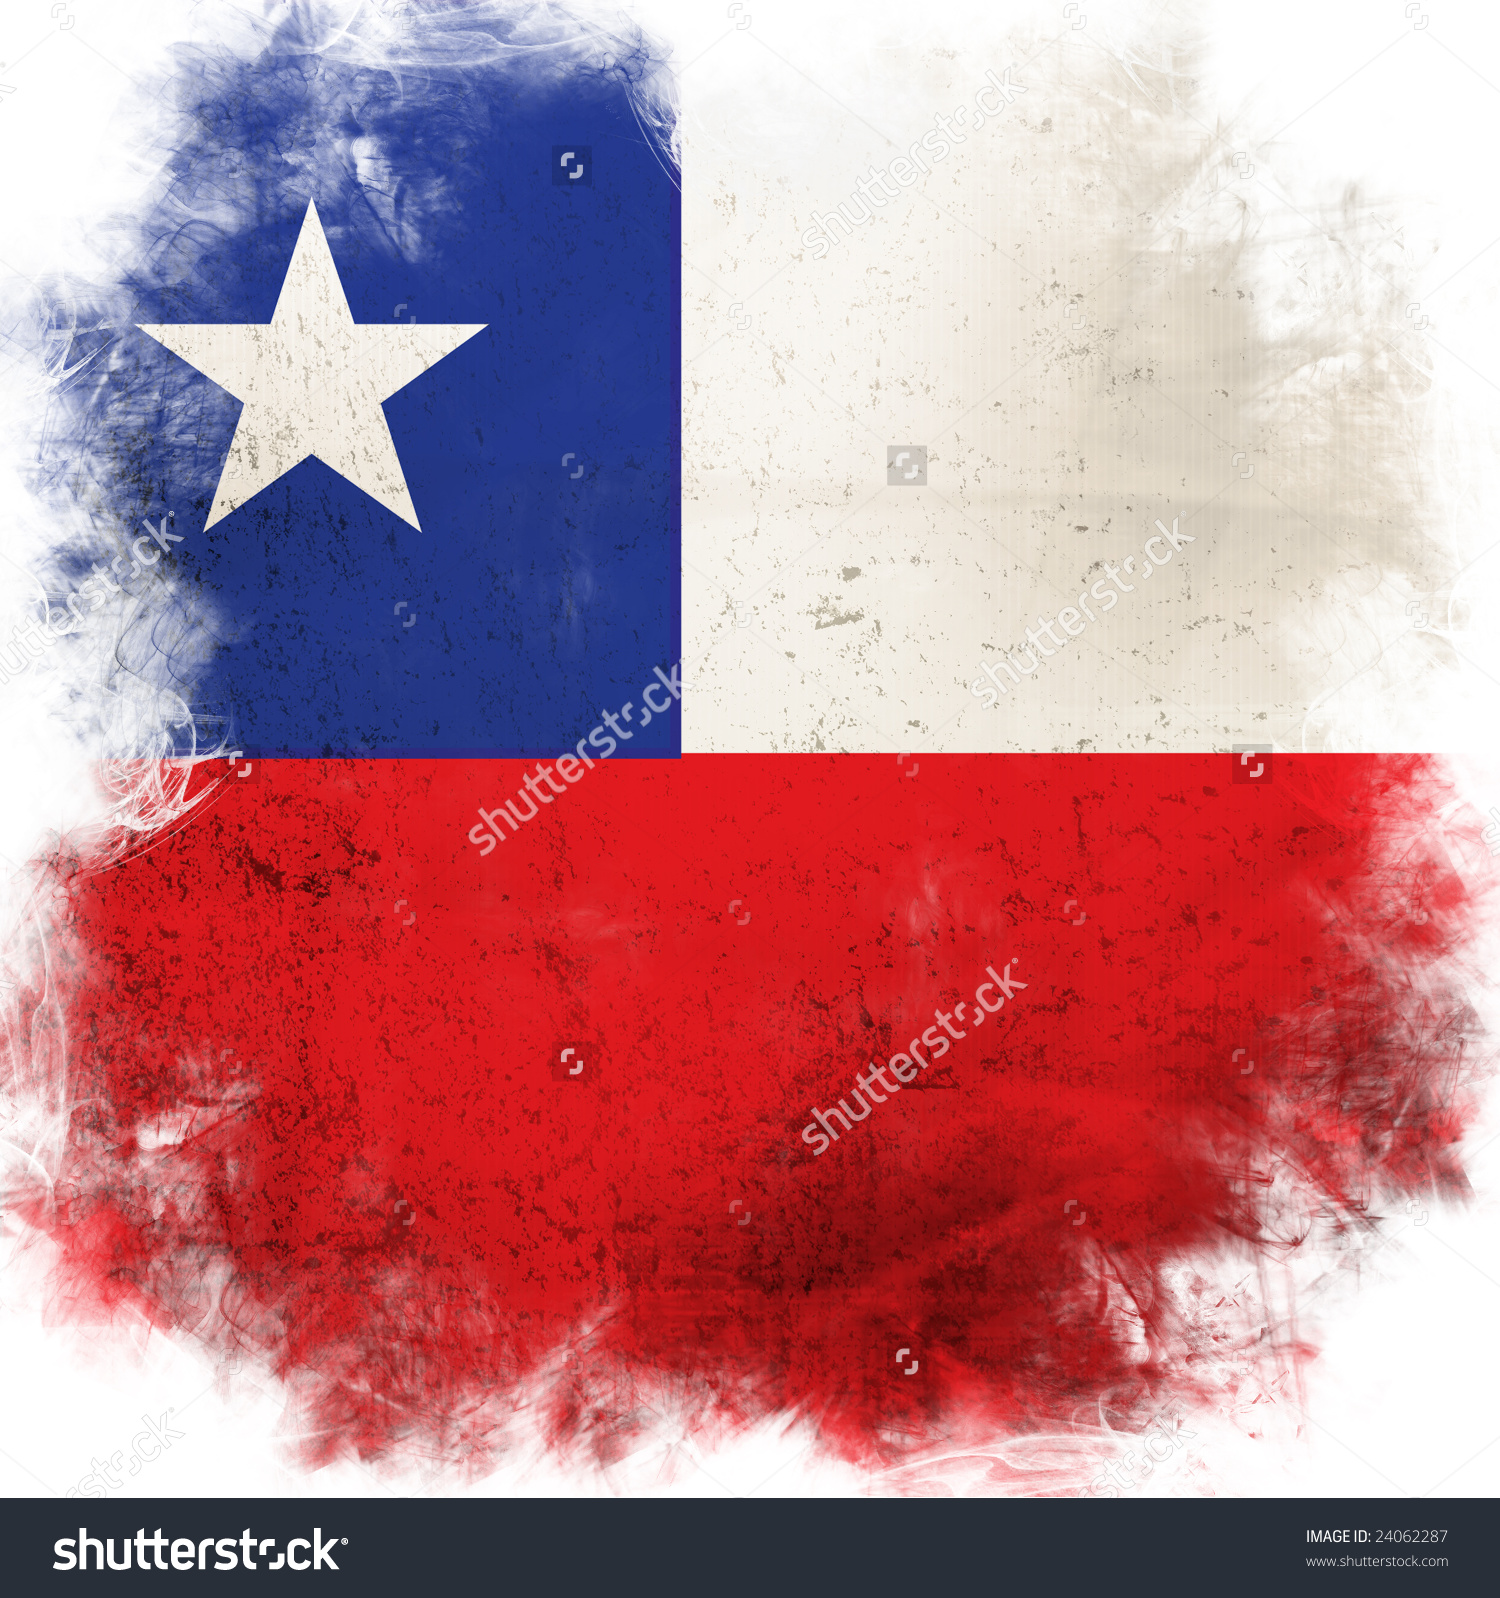 Flag Of Chile HD wallpapers, Desktop wallpaper - most viewed